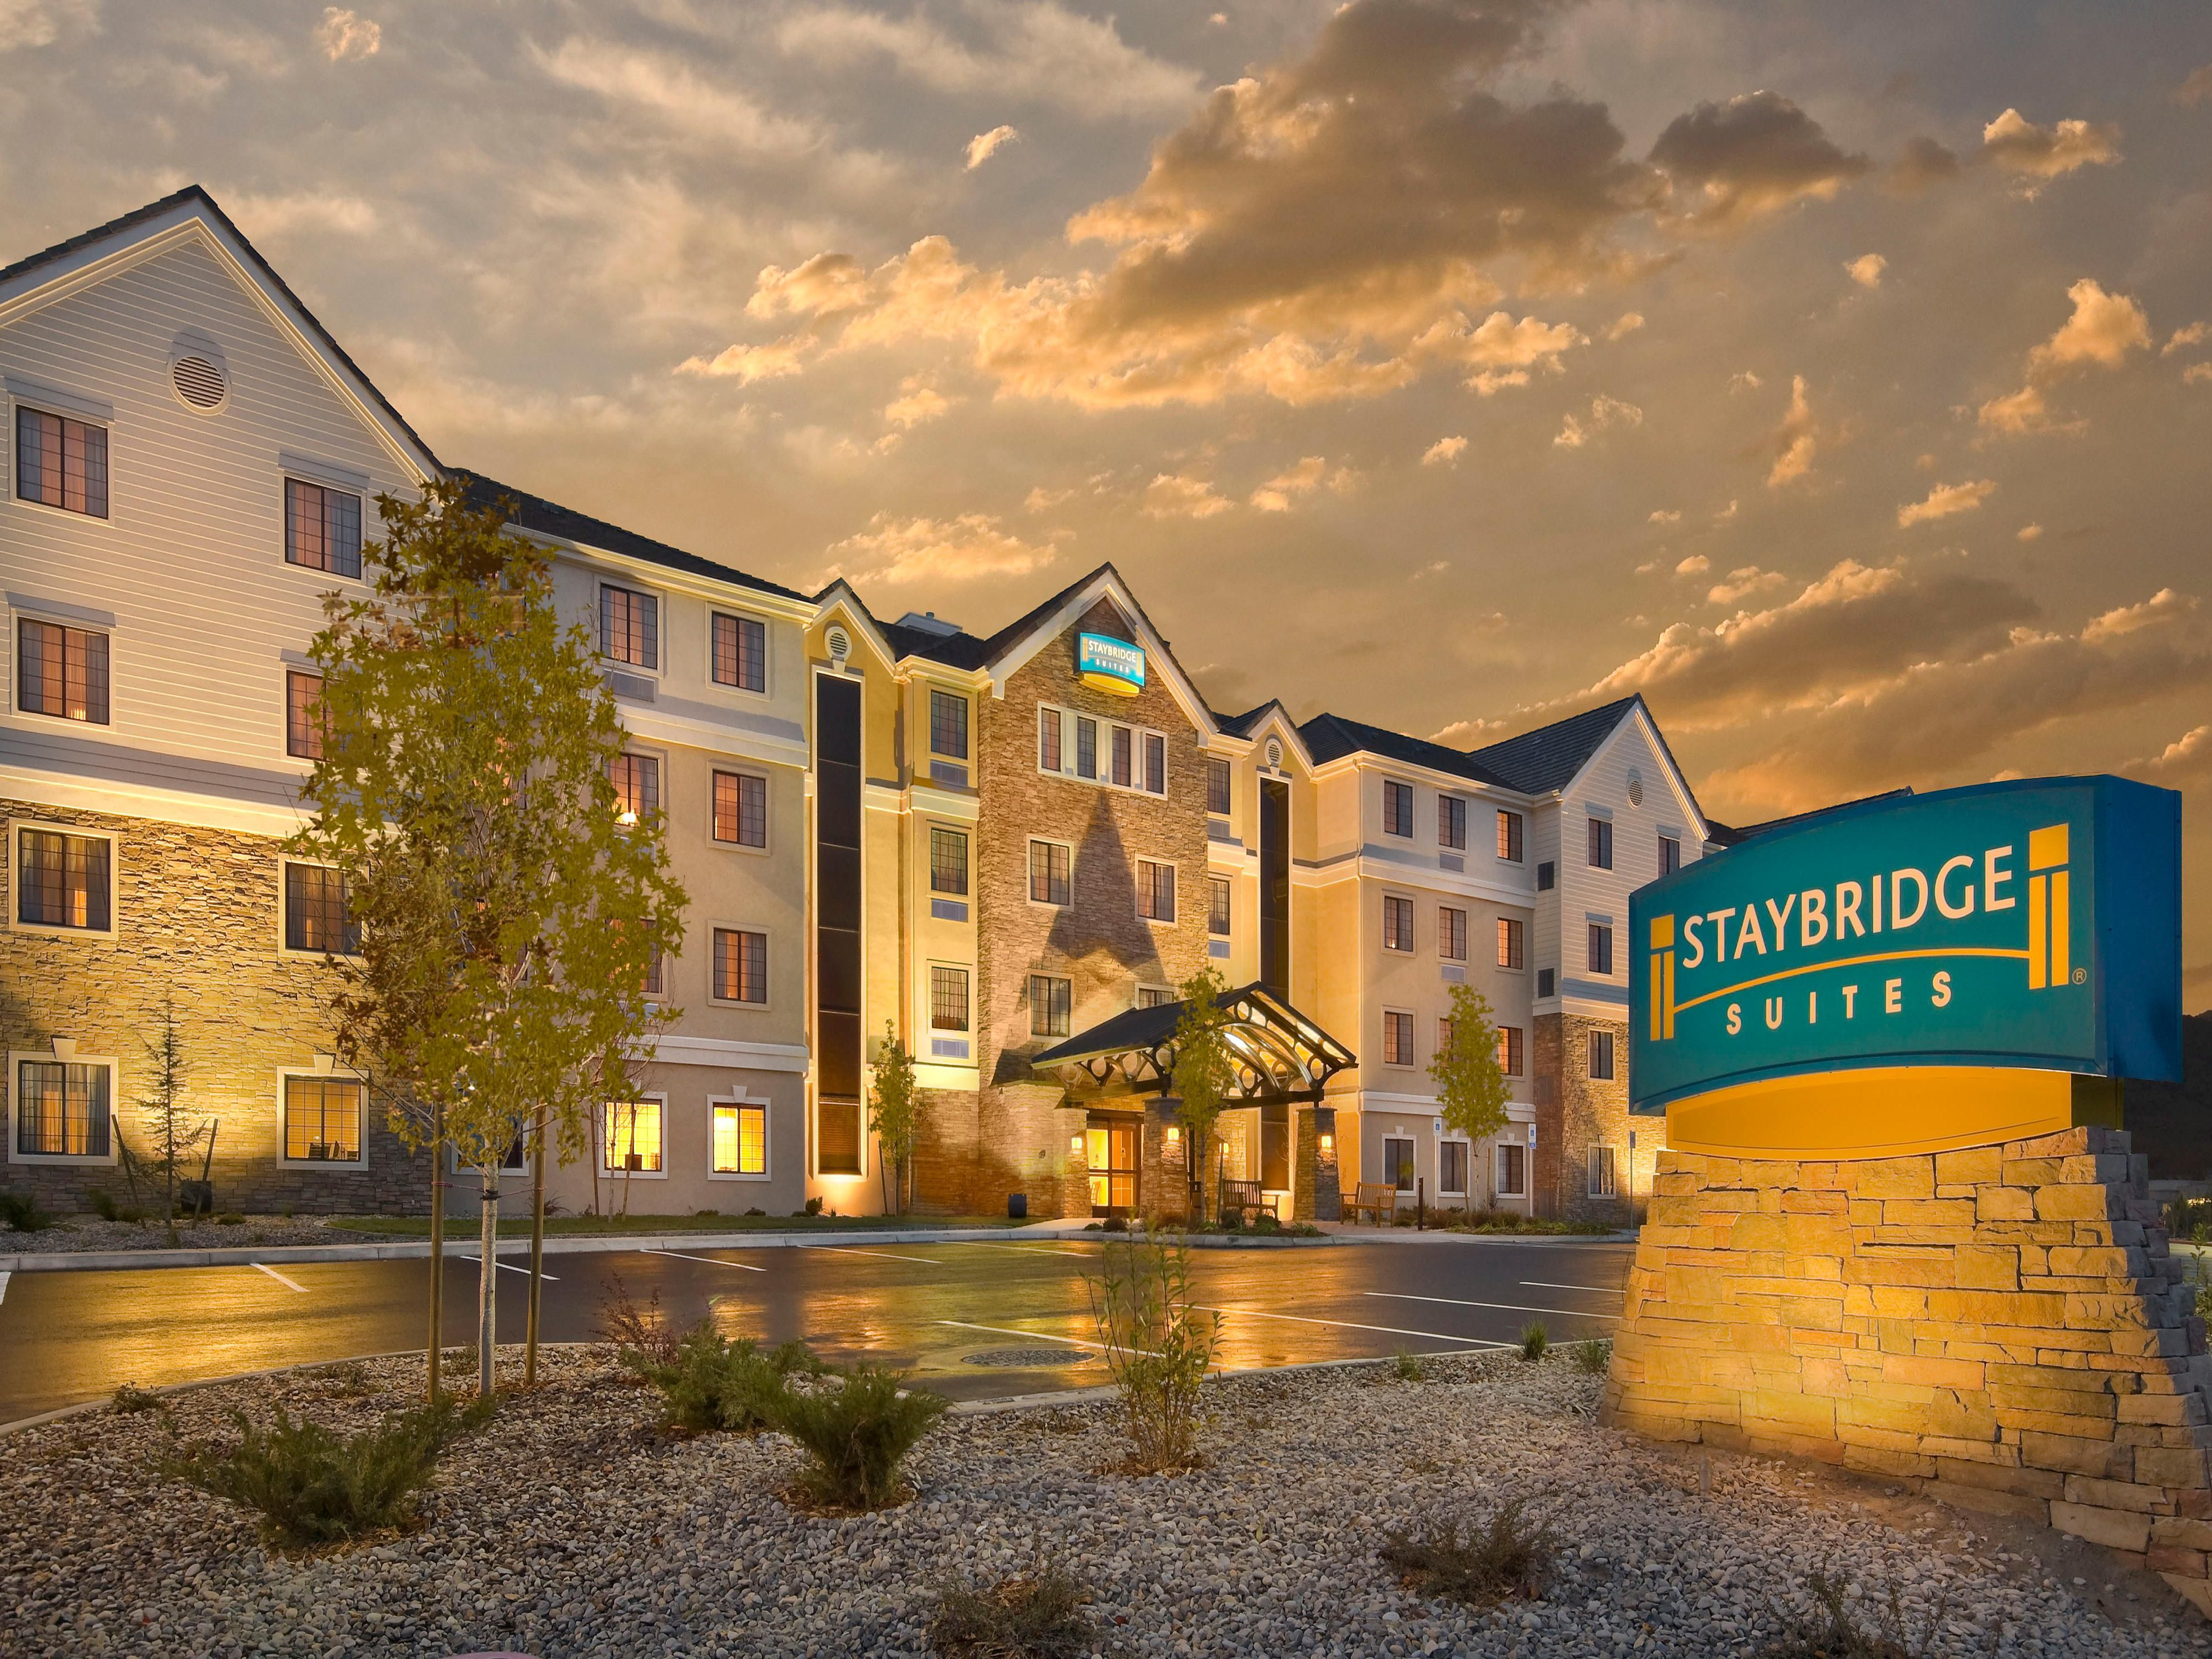 reno hotel staybridge suites reno extended stay hotel in reno nv